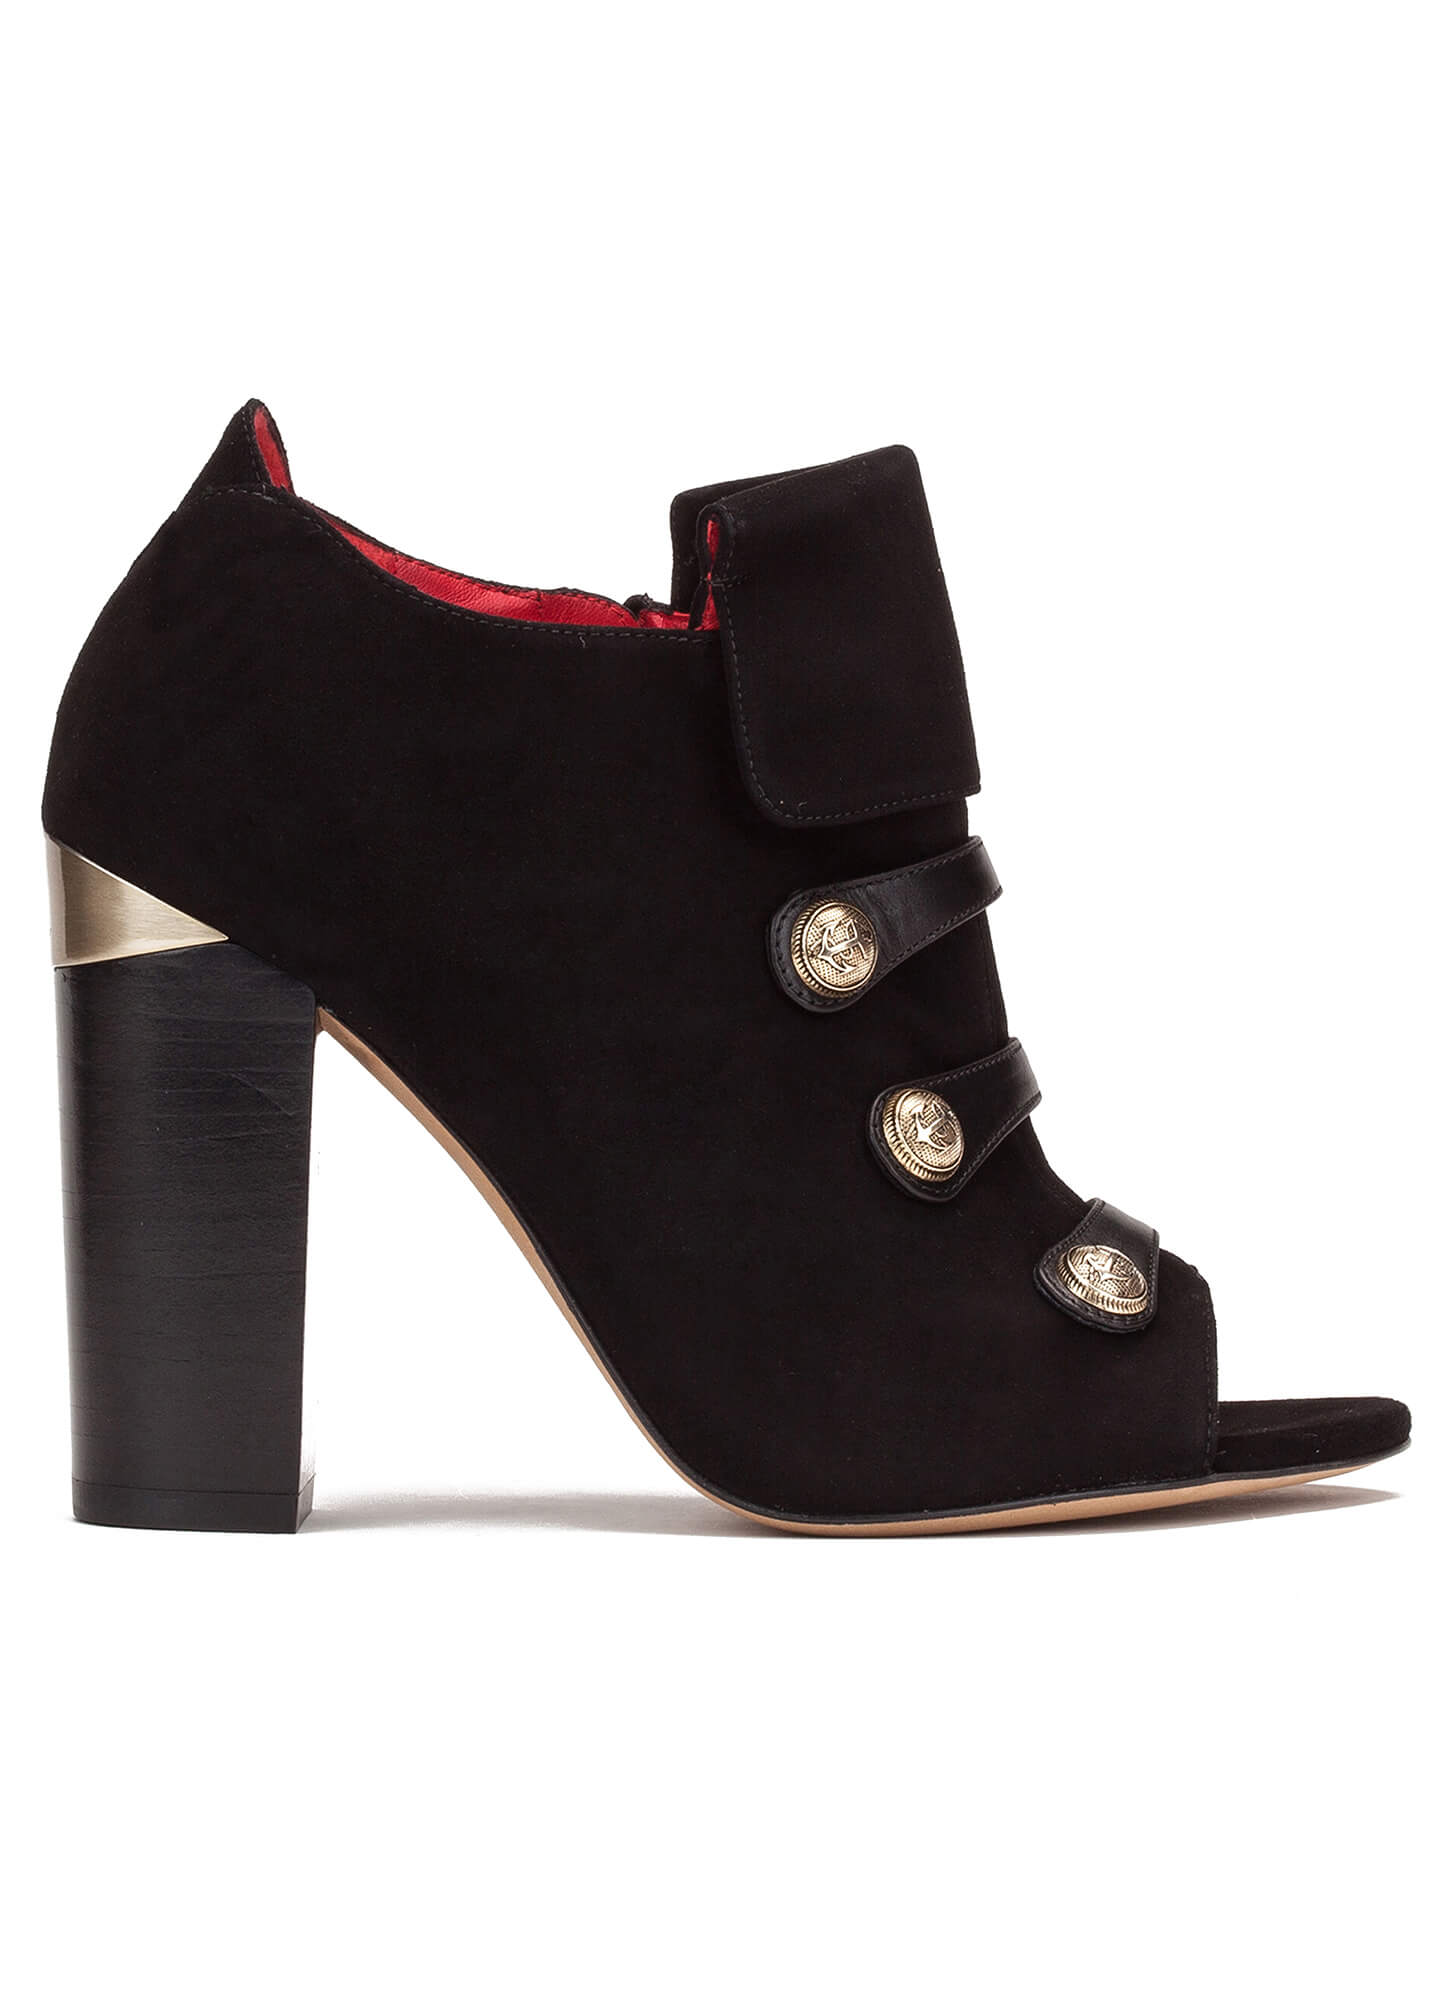 308d7dabfc762 High block heel ankle boots in black suede and leather with metallic  buttons ...